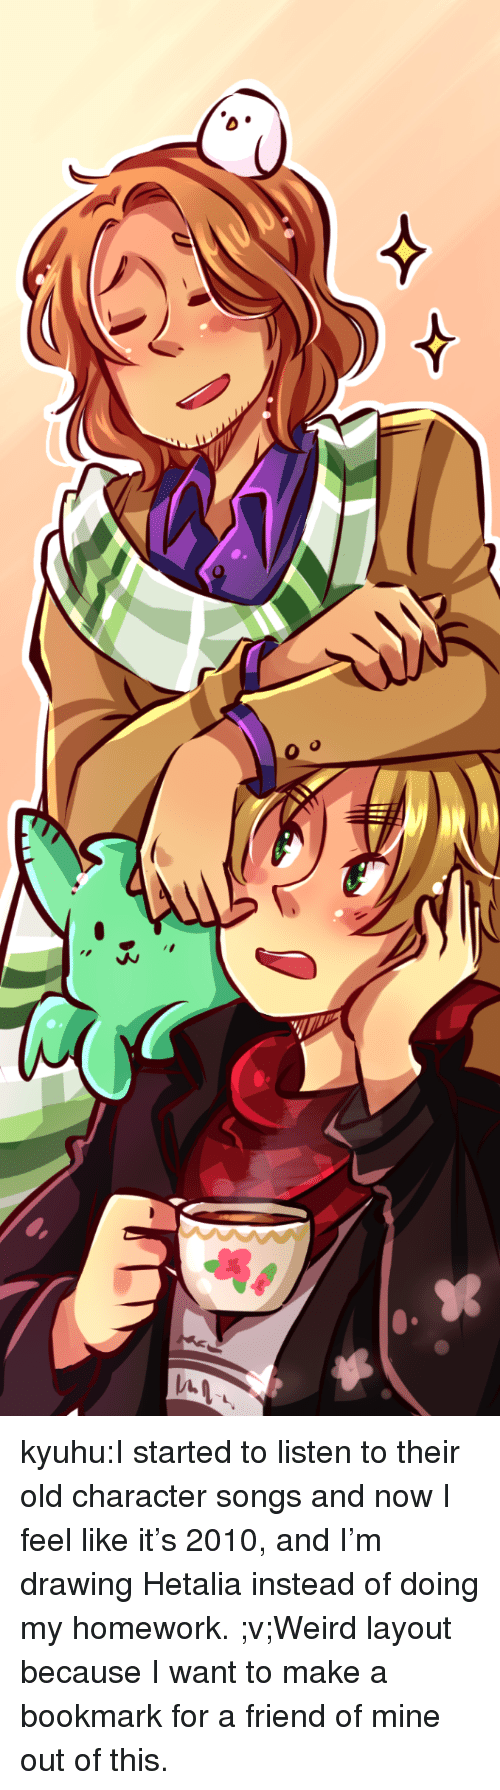 hetalia: kyuhu:I started to listen to their old character songs and now I feel like it's 2010,  and I'm drawing Hetalia instead of doing my homework. ;v;Weird layout because I want to make a bookmark for a friend of mine out of this.